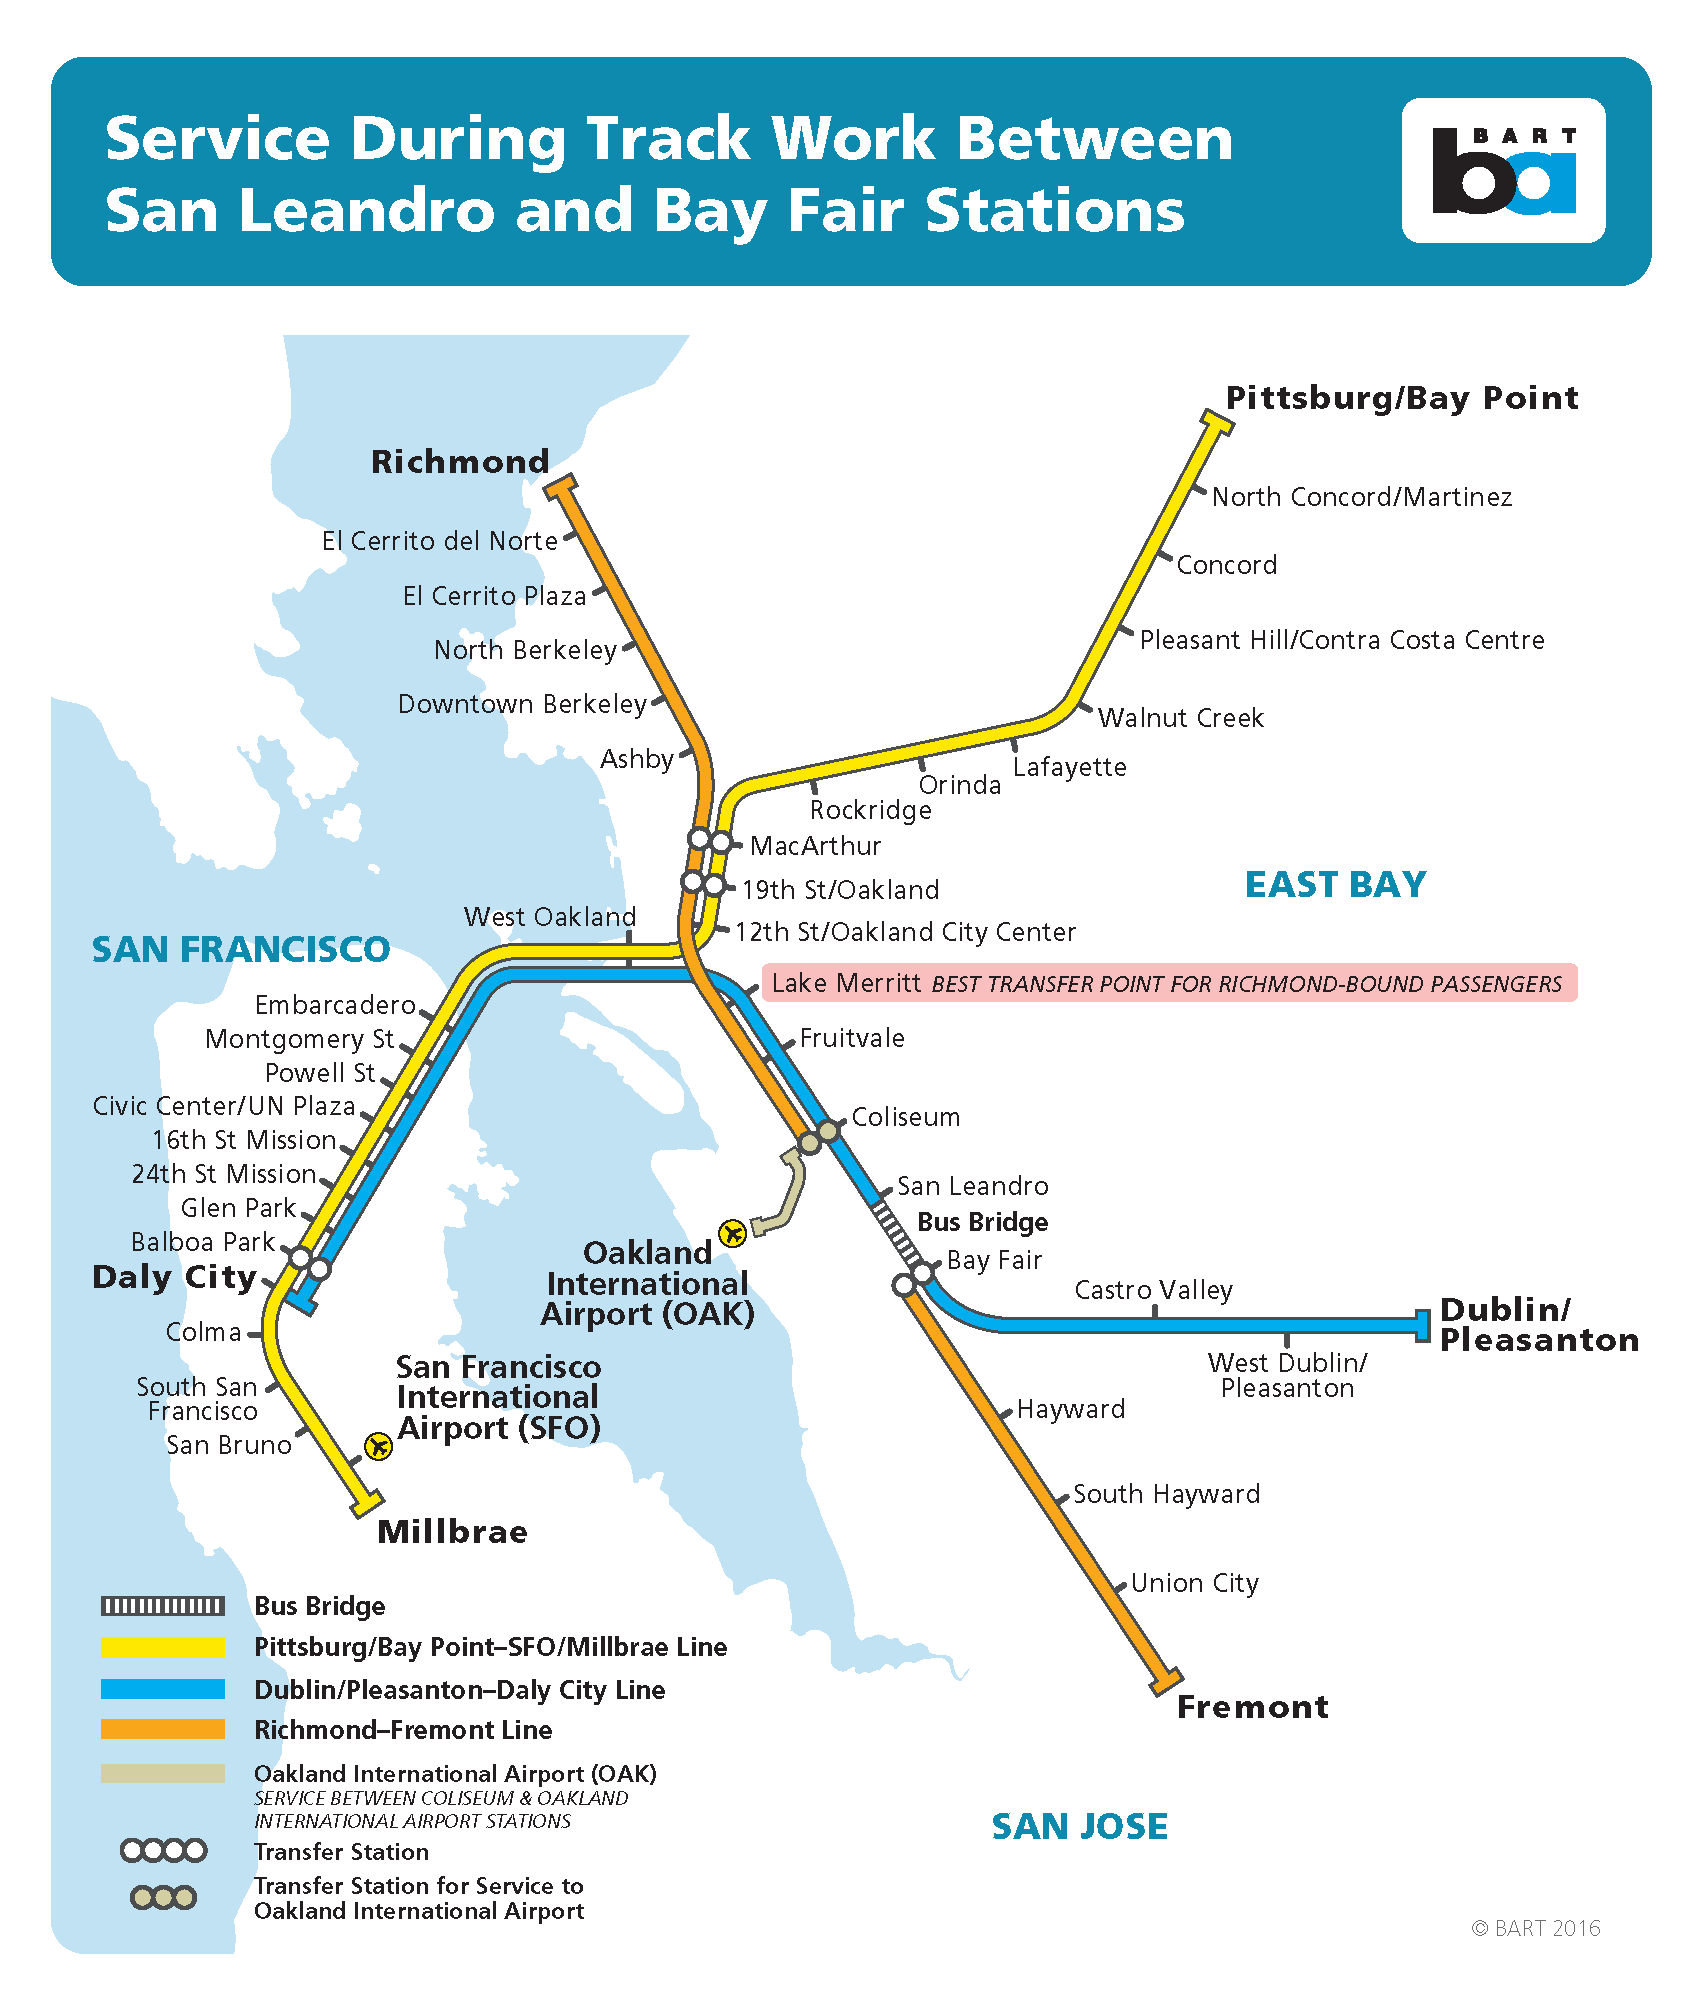 bus bridge between san leandro-bay fair to end at 3pm on monday for